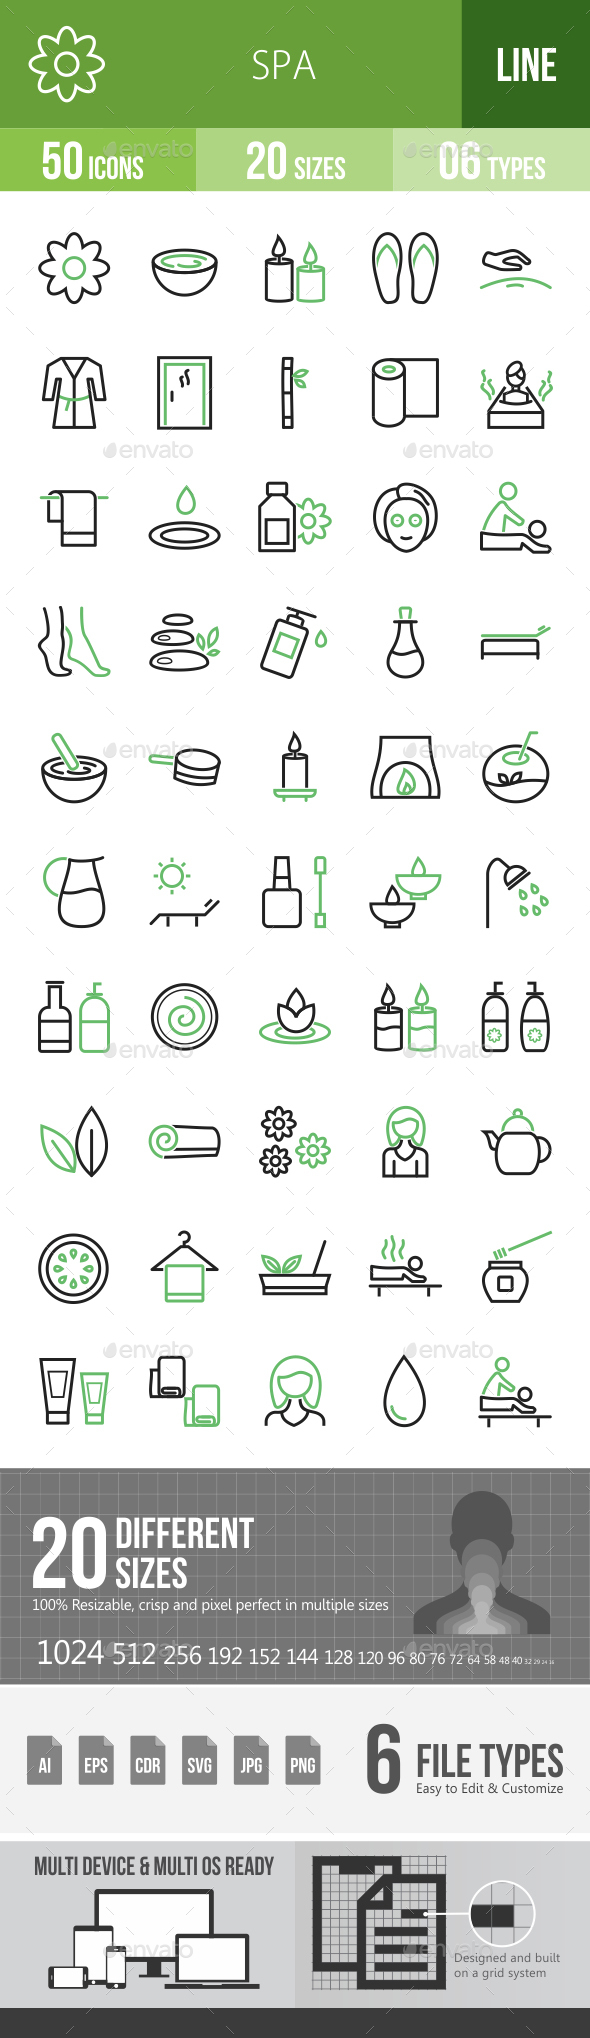 Spa Line Green & Black Icons - Icons